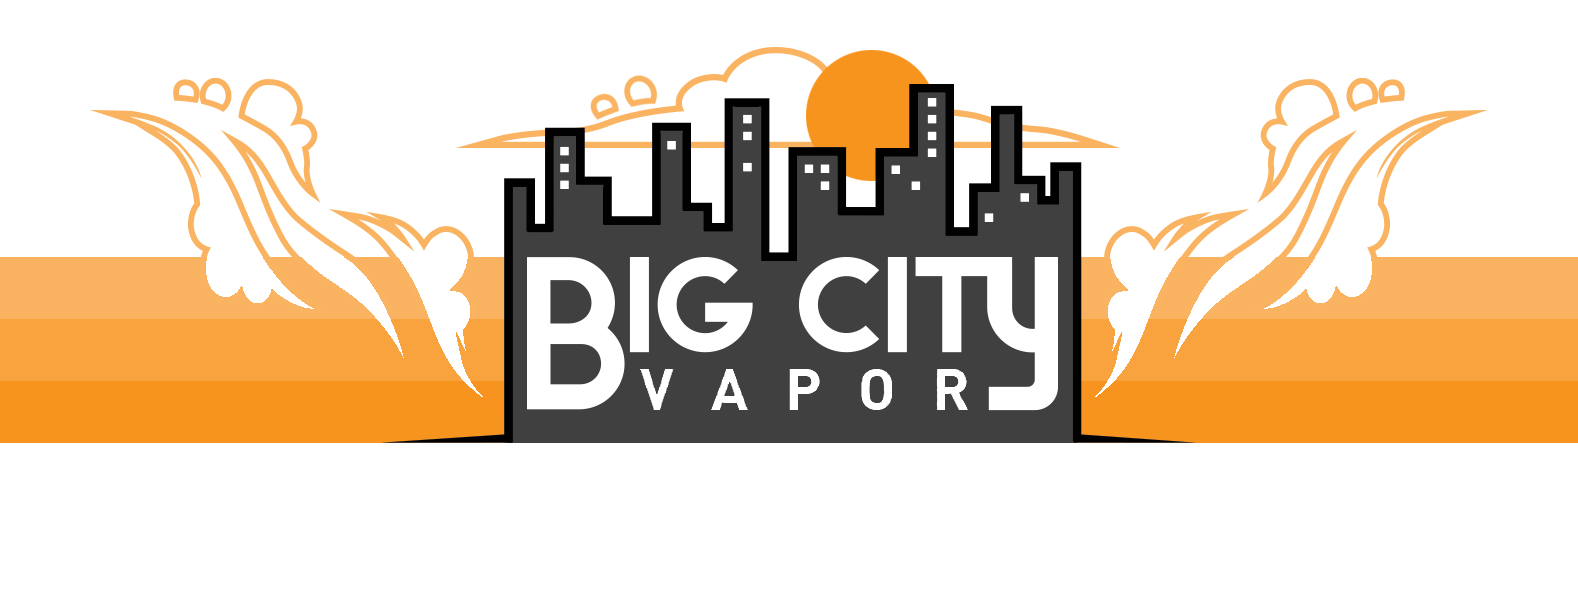 Big City Vapor